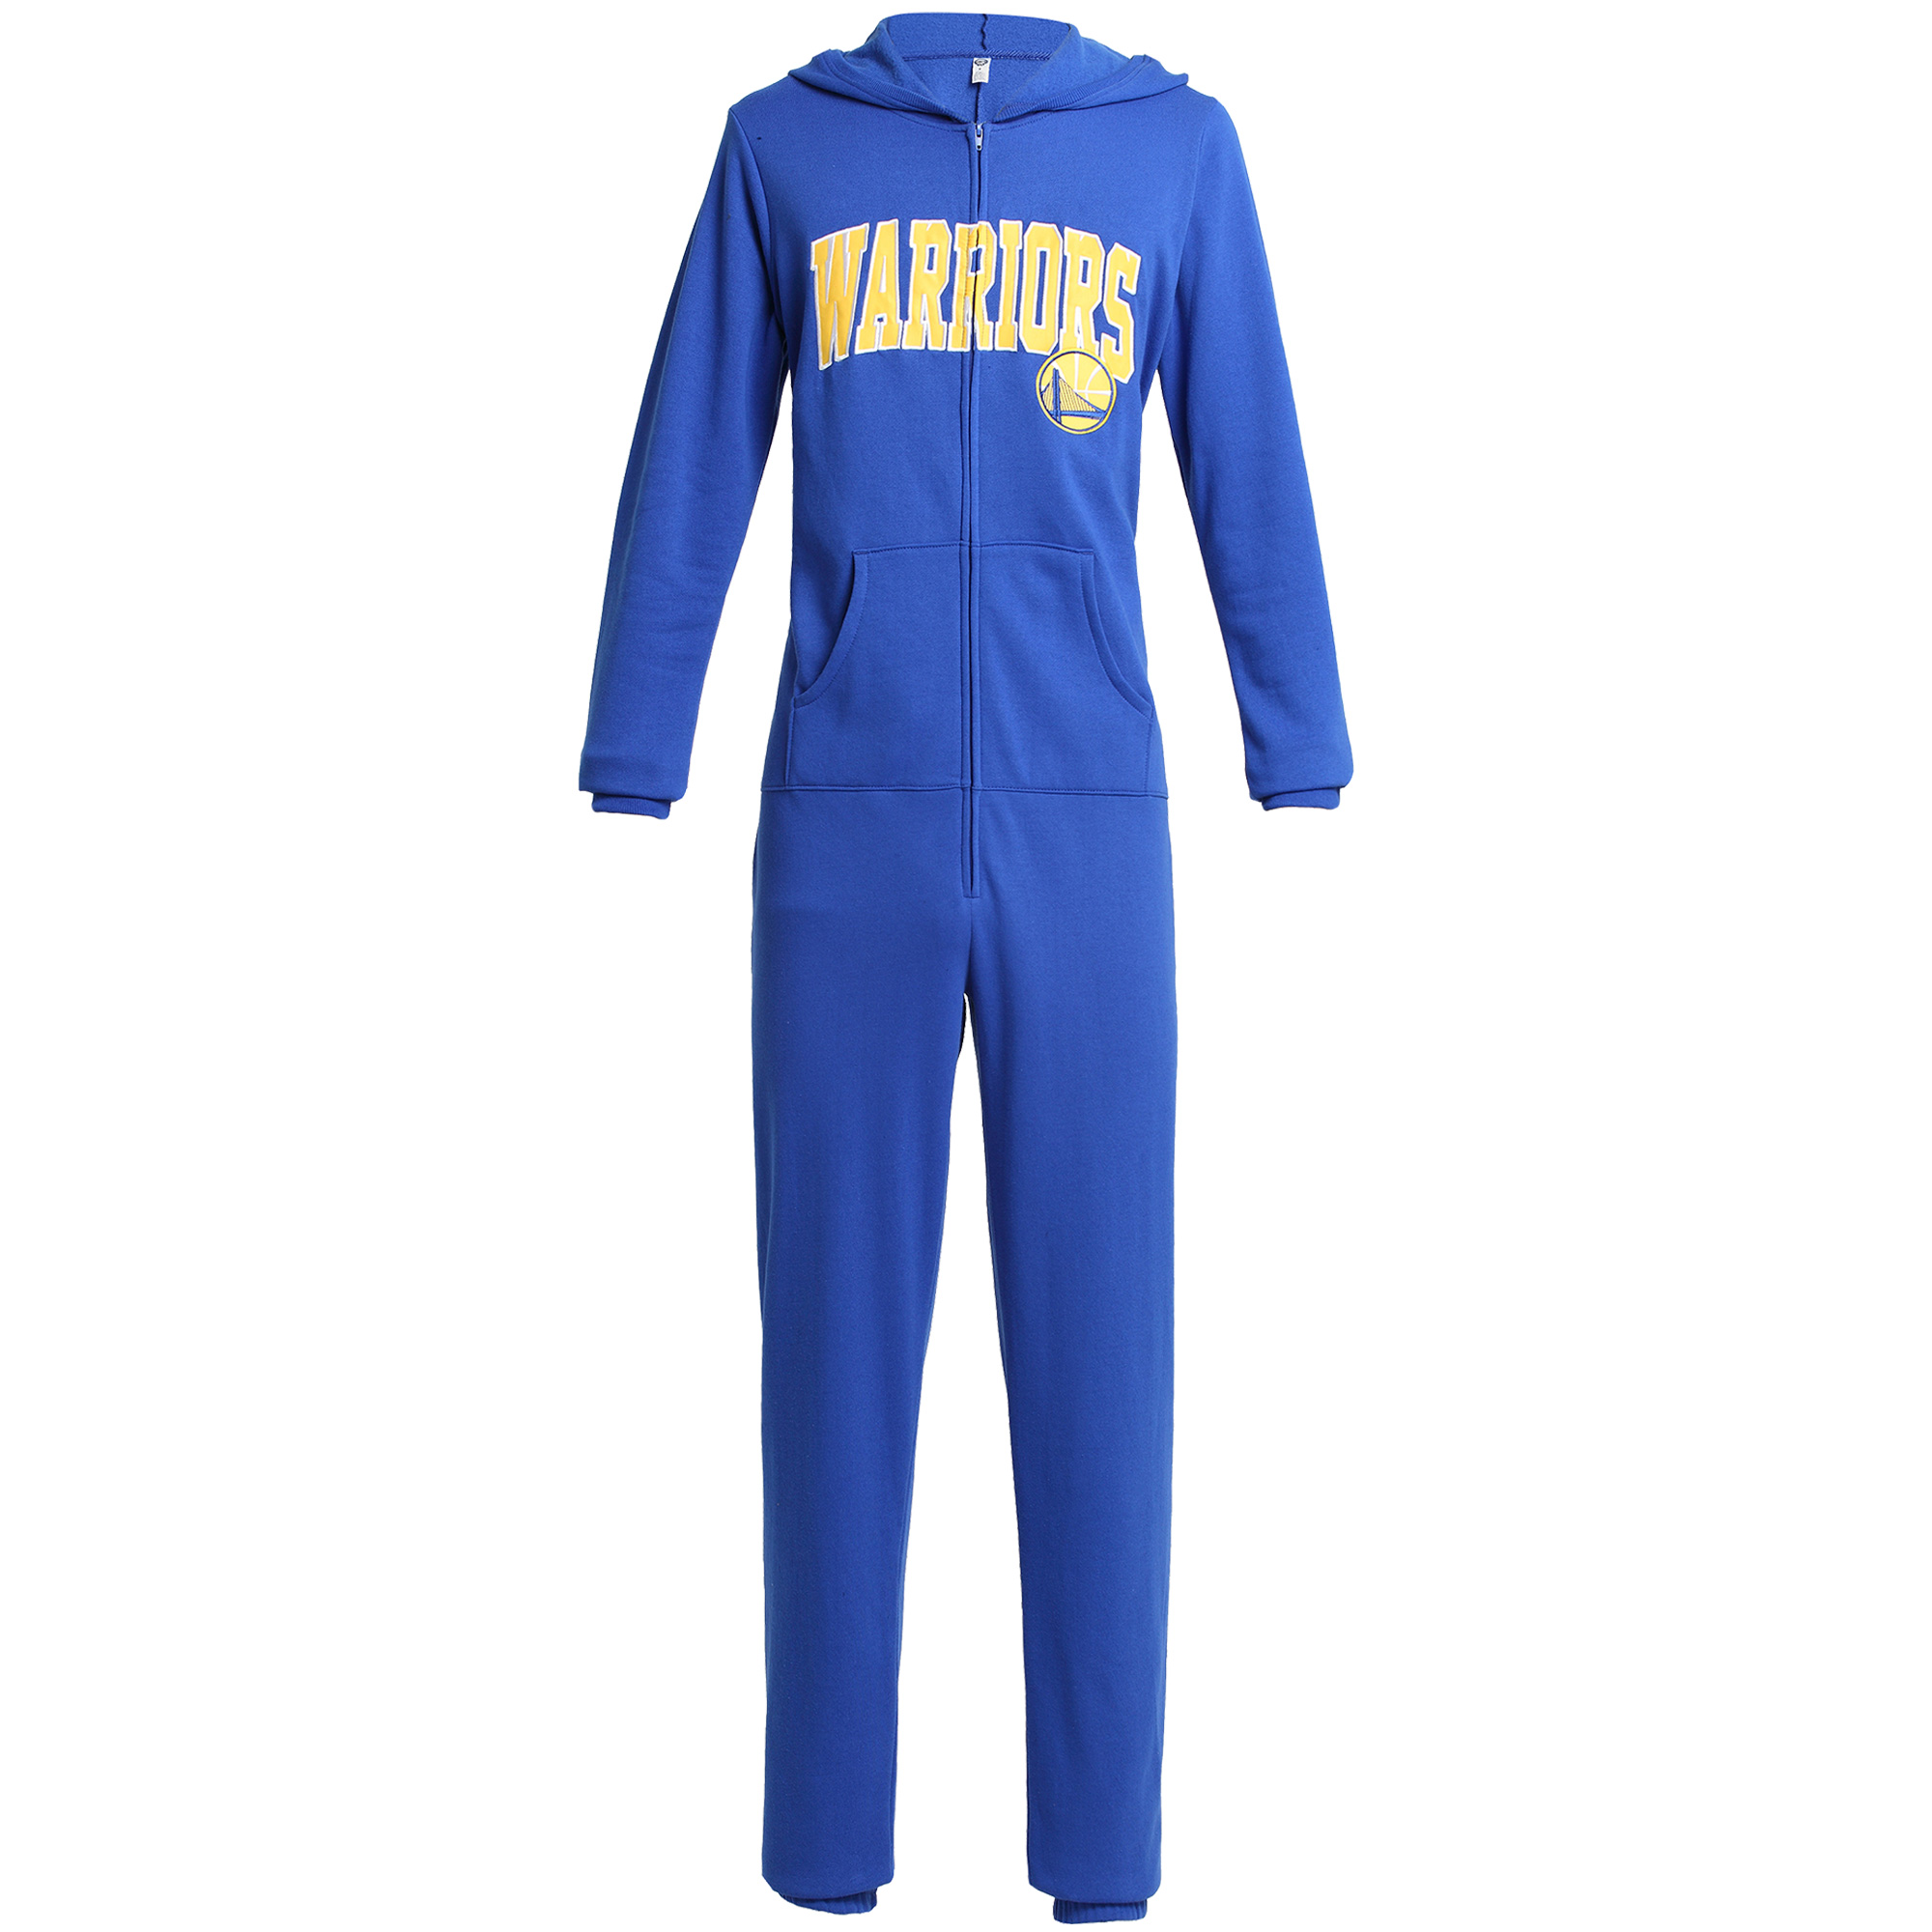 Golden State Warriors Concepts Sport Forefront Union Suit Pajamas - Royal